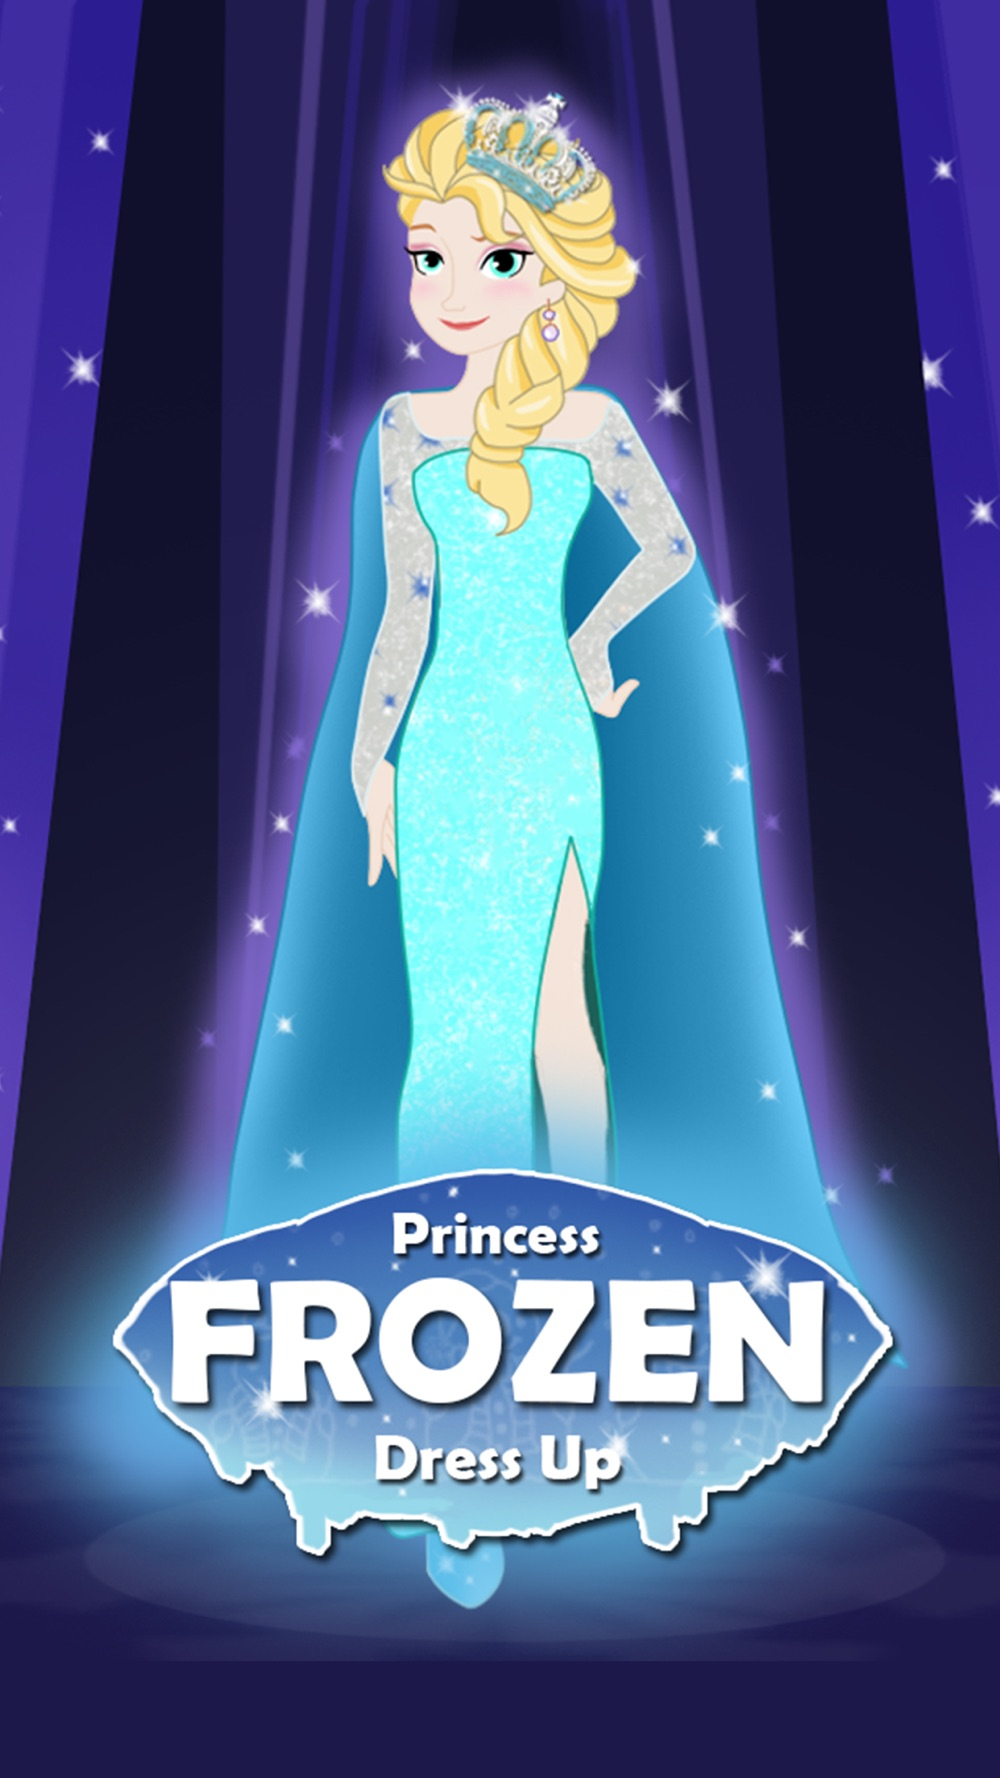 Princess Frozen Dress up and makeover beauty salon for girls Cheat Codes